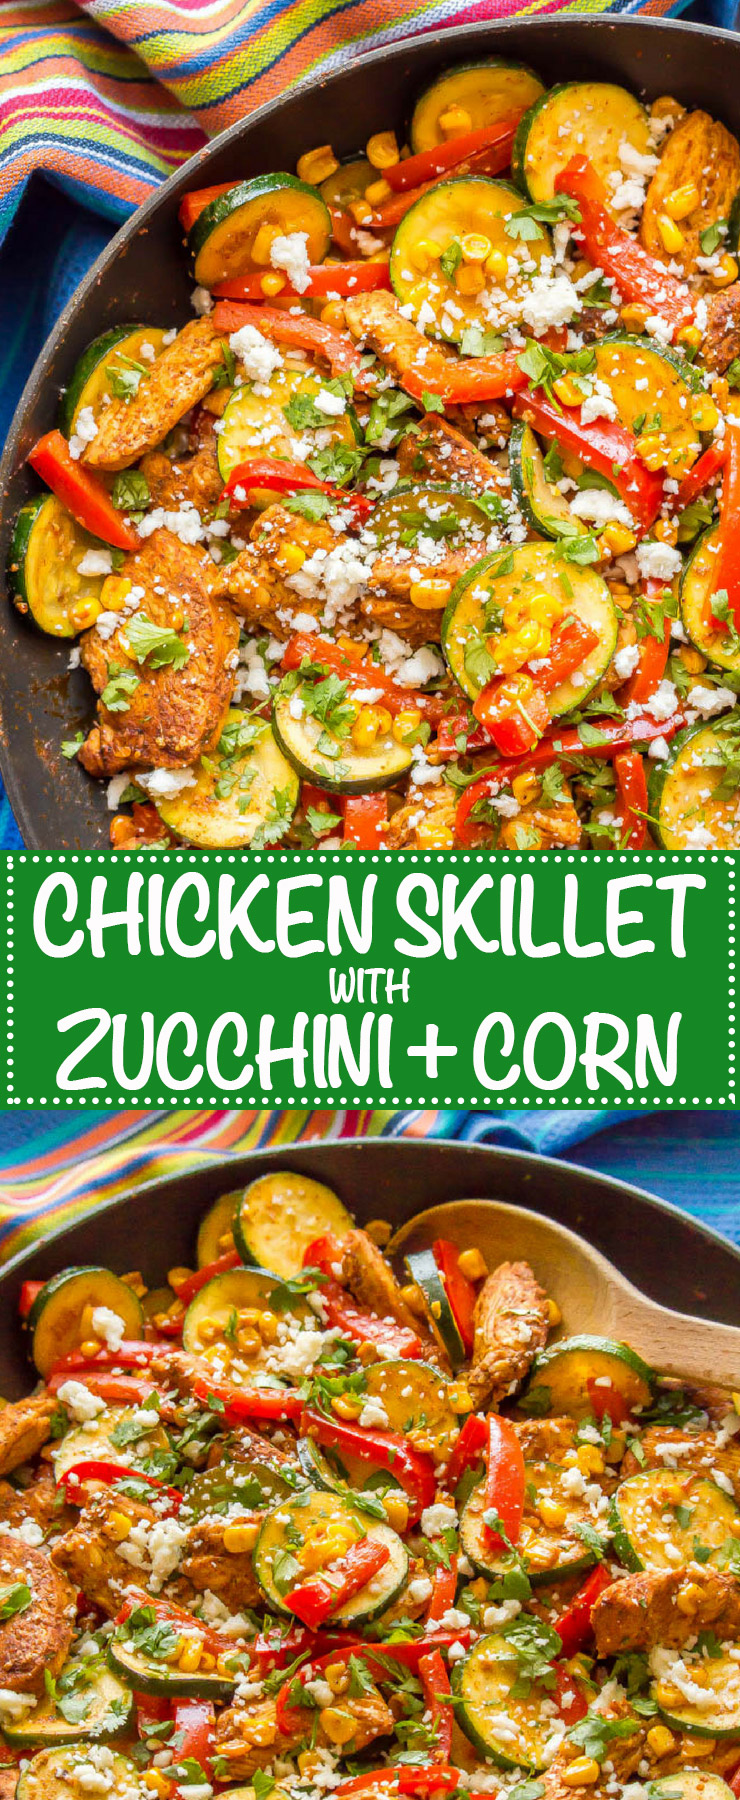 Chicken and zucchini skillet with corn is a one-pot wonder full of southwestern flavors, colorful veggies and juicy chicken. It's a gluten-free and low-carb recipe that's perfect for meal prepping. #onepotchicken #chickenskillet #lowcarbrecipe #chickenandveggies | www.familyfoodonthetable.com